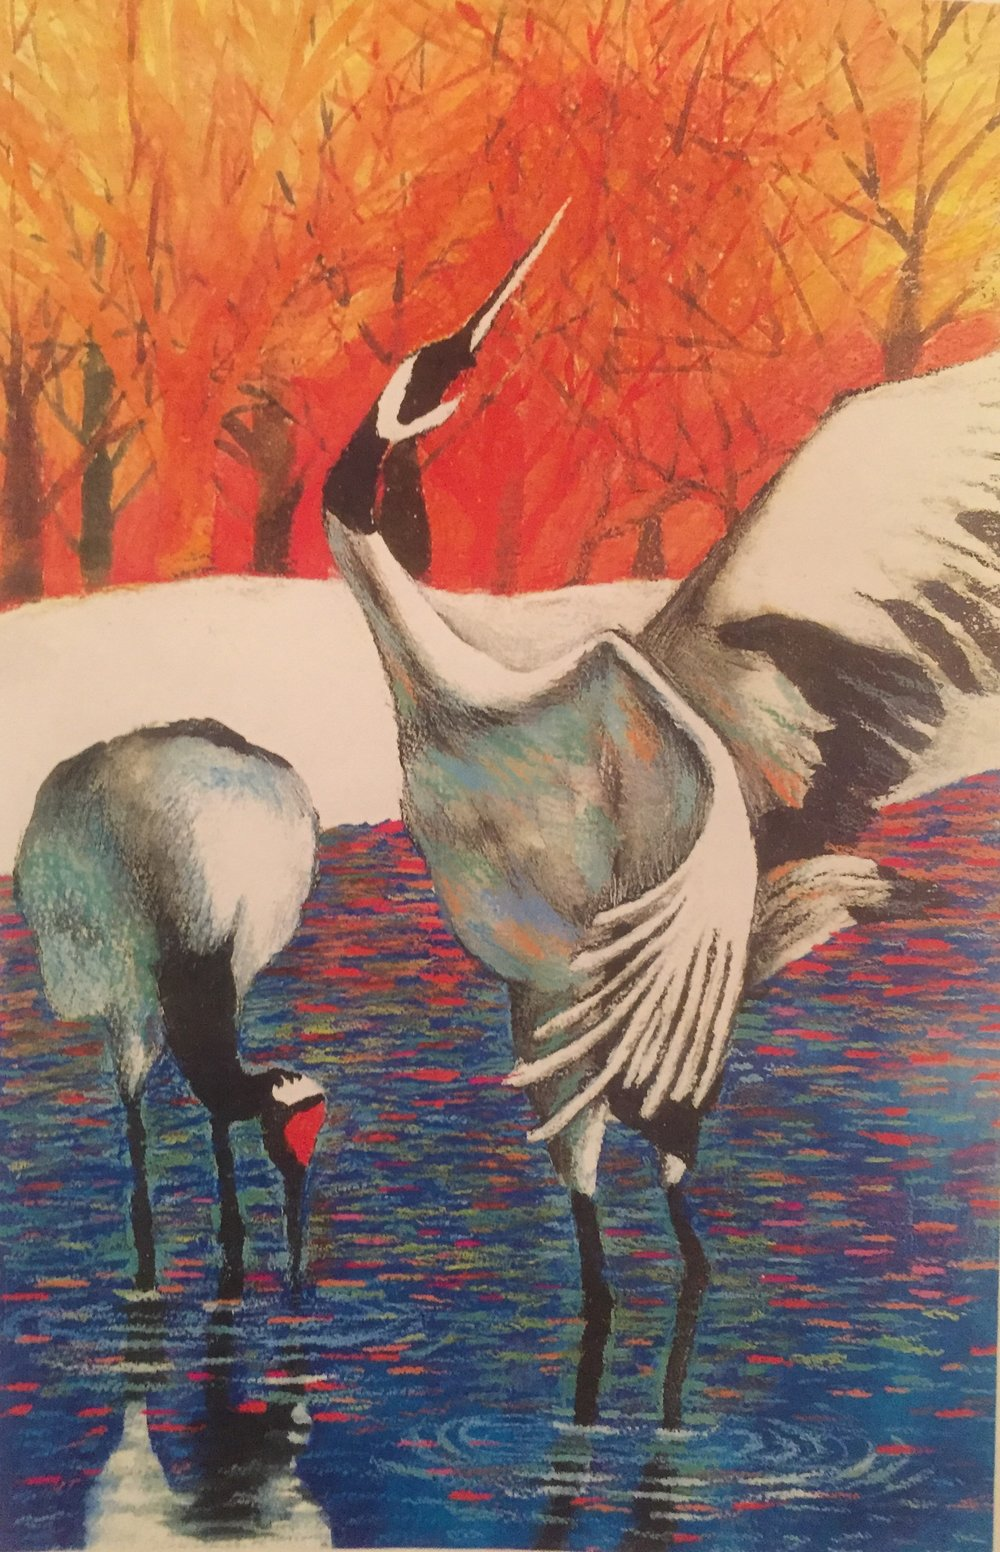 Hhak (Korean Cranes),  Colored Pencils on Watercolor